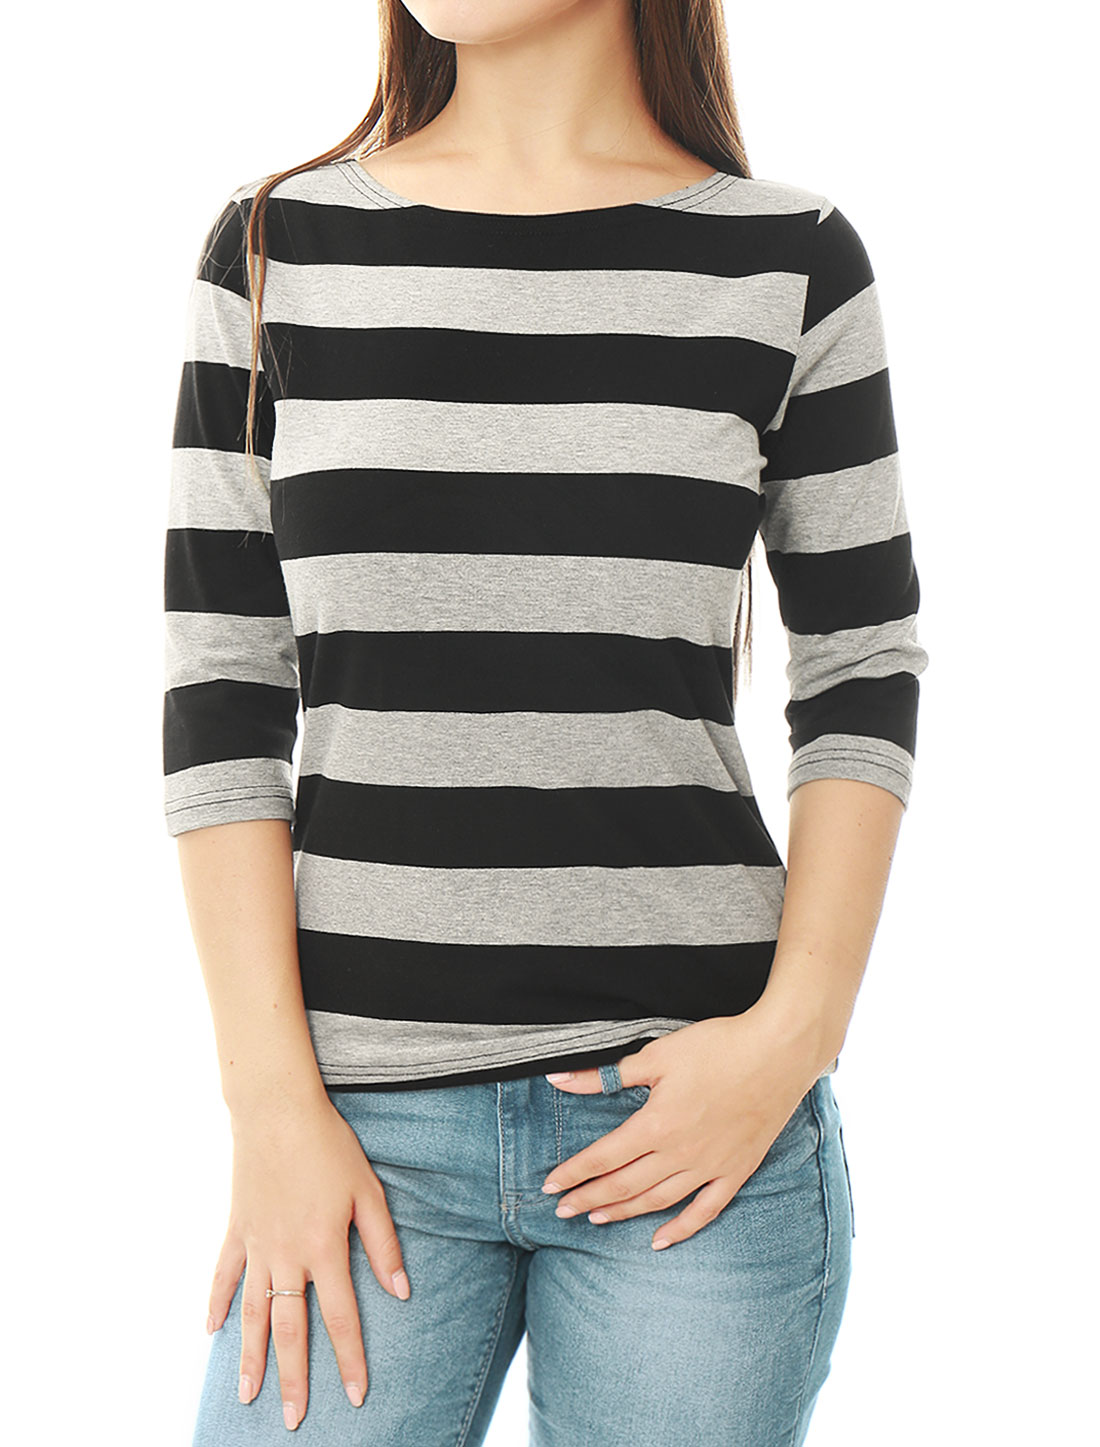 Women Elbow Sleeves Boat Neck Slim Fit Striped Tee Black XL